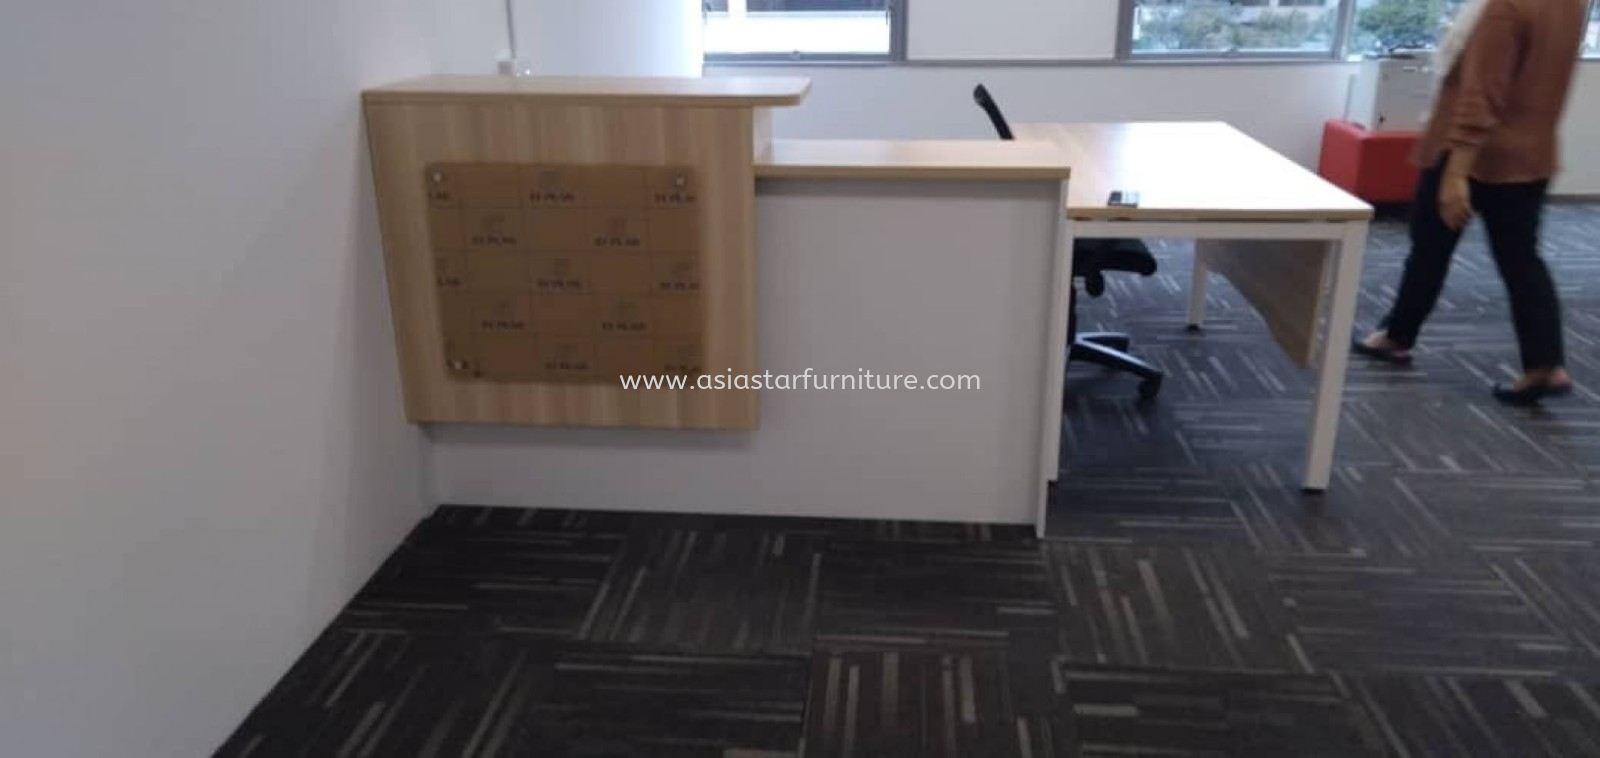 DELIVERY & INSTALLATION OFFICE RECEPTION COUNTER TABLE B-SET 1800 OFFICE FURNITURE ZON PERINDSTRIAN PJCT, PETALING JAYA